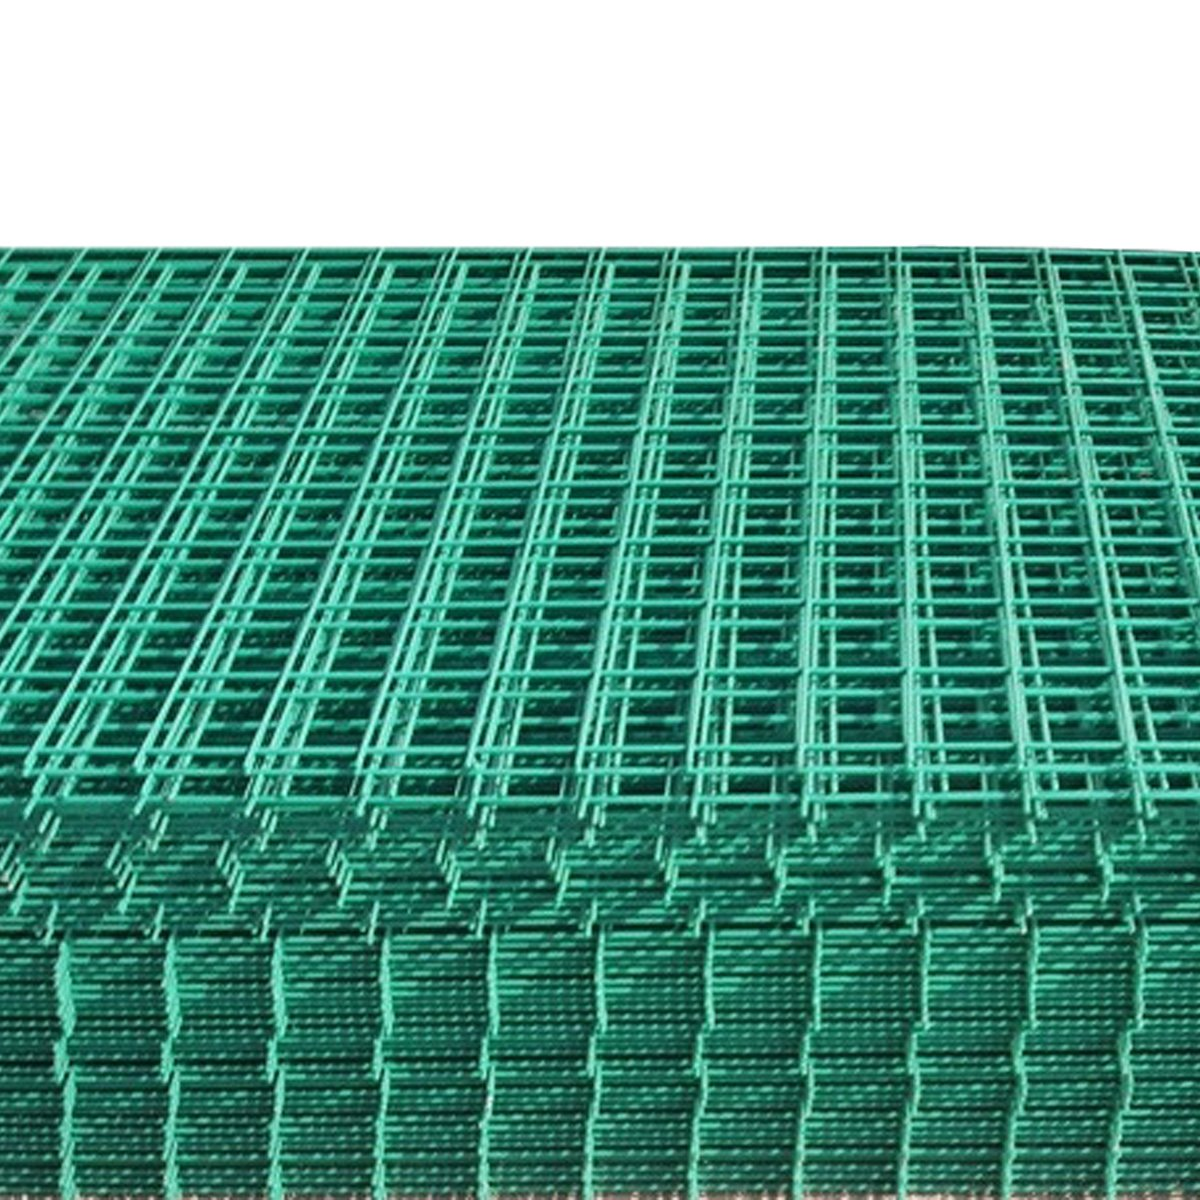 Suregreen 8 Pack of Green PVC Coated Welded Wire Mesh Panel 1.8m x ...